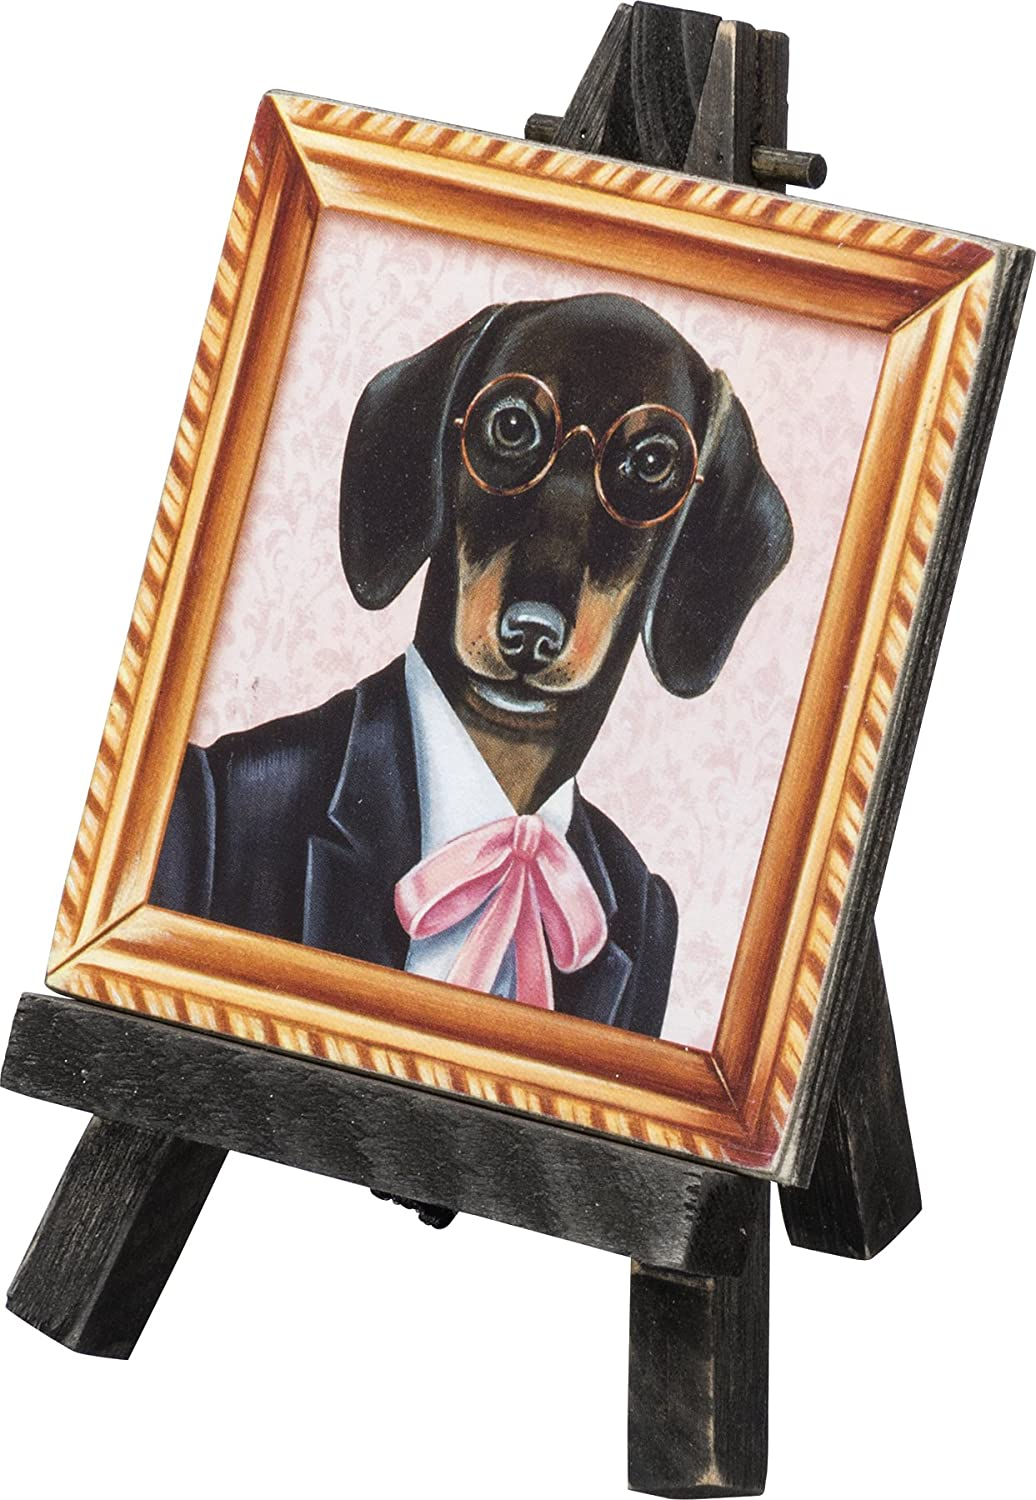 Primatives by Kathy Fun Mini Easel Dogs Decorative Accessory Yorkie